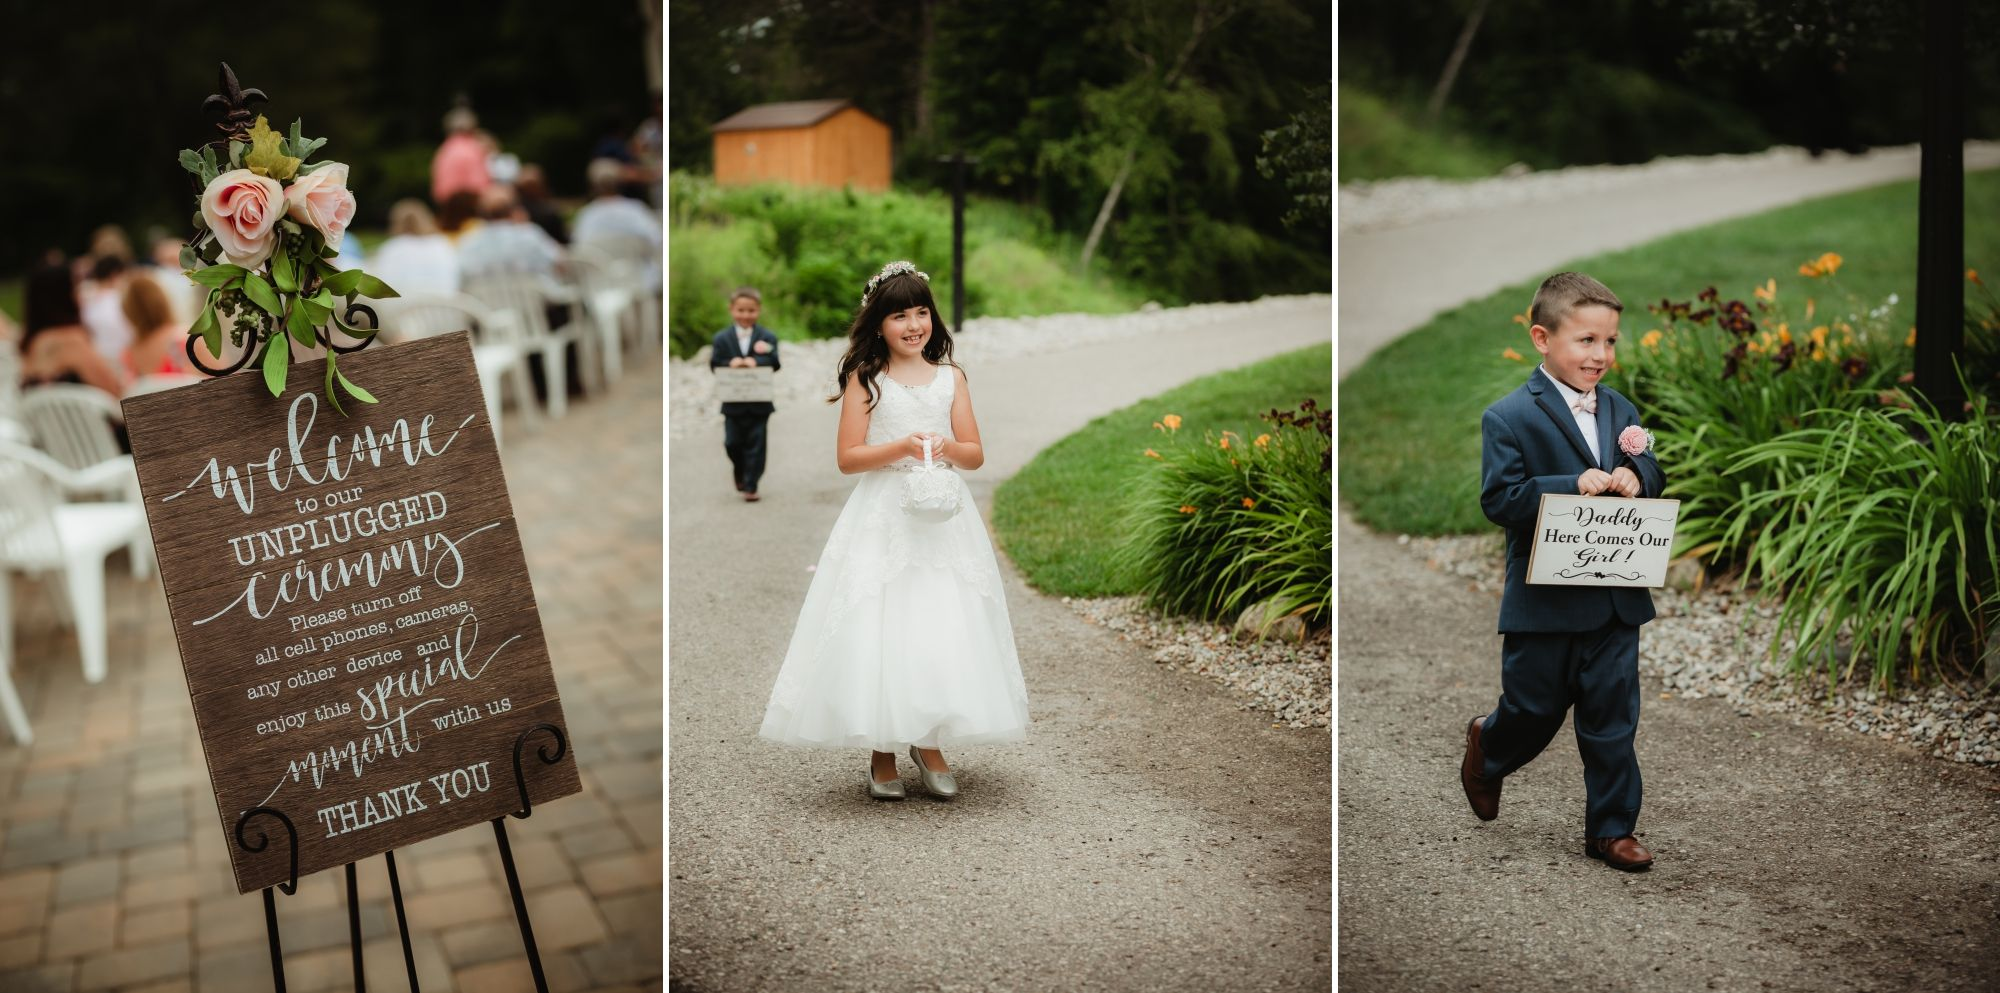 Photos of a welcome sign then the flower girl and ring bearer walking down a path outside.